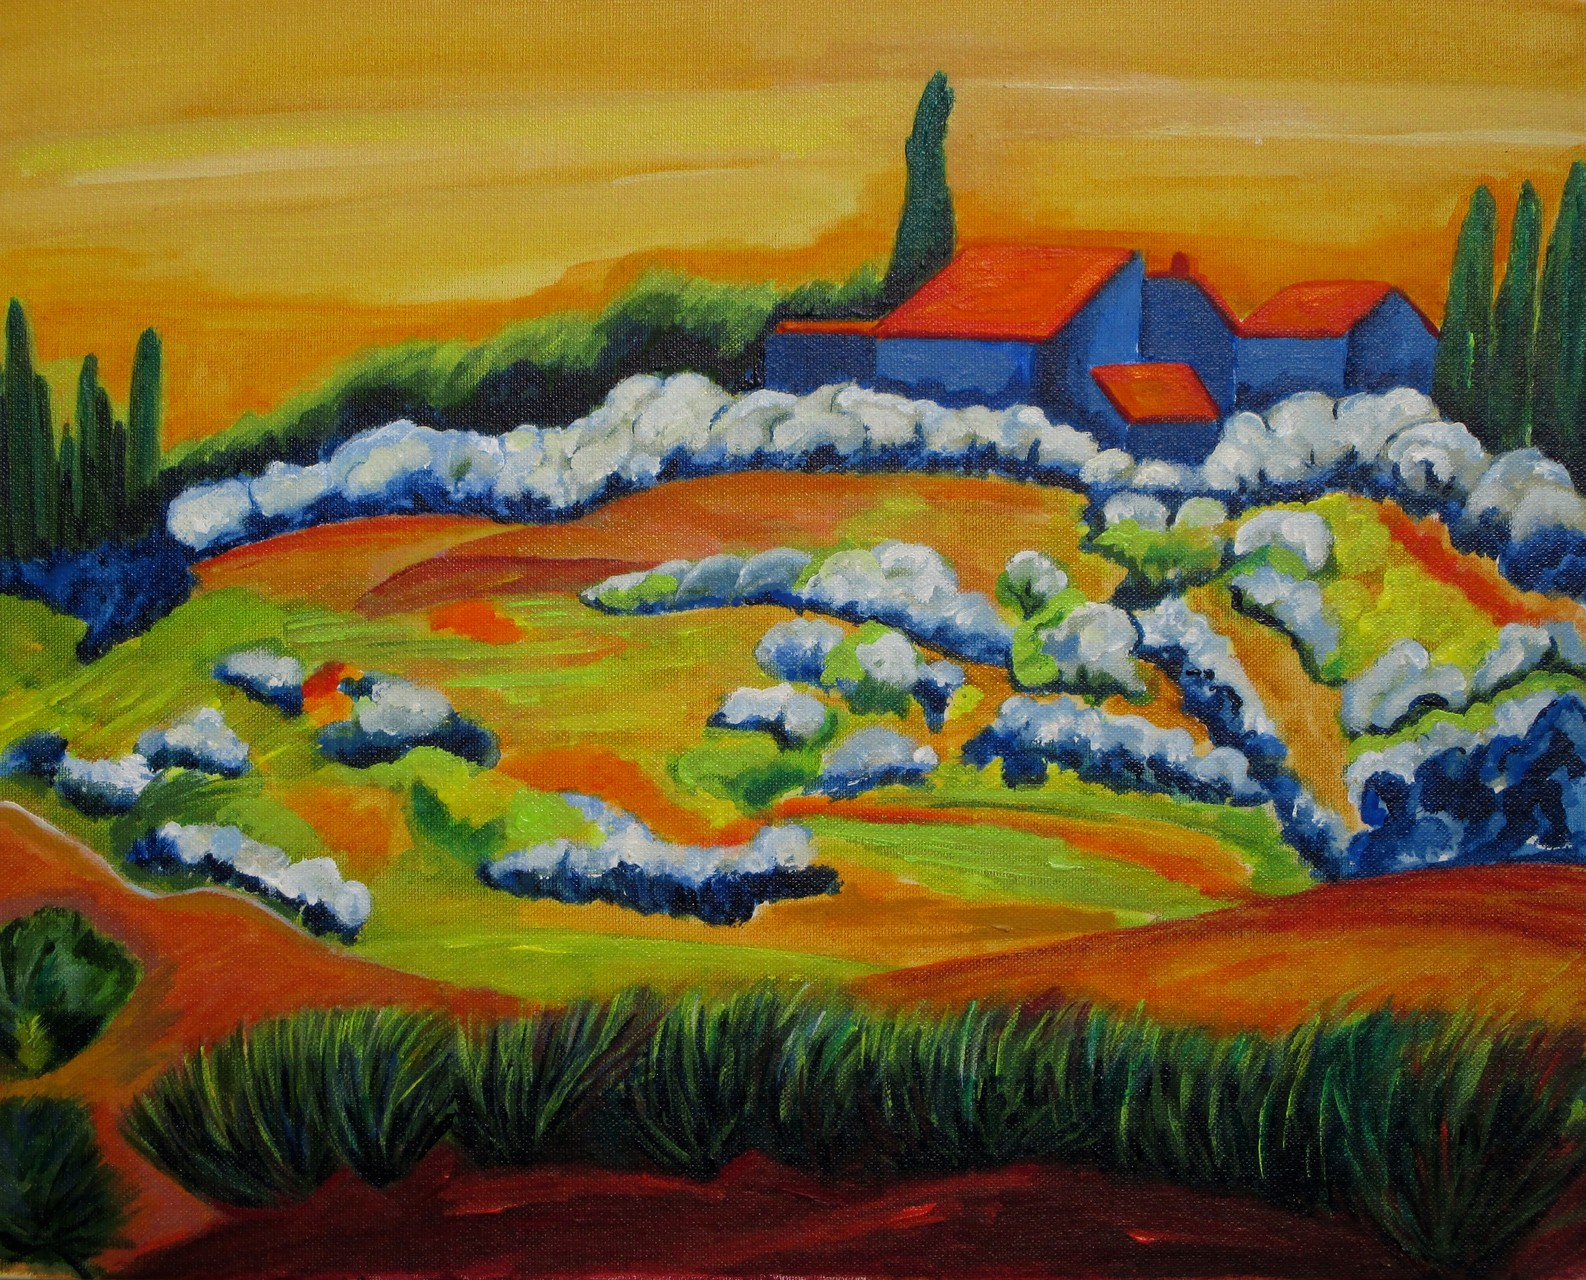 Tuscan Hills, acrylic on paper, 20 x 16